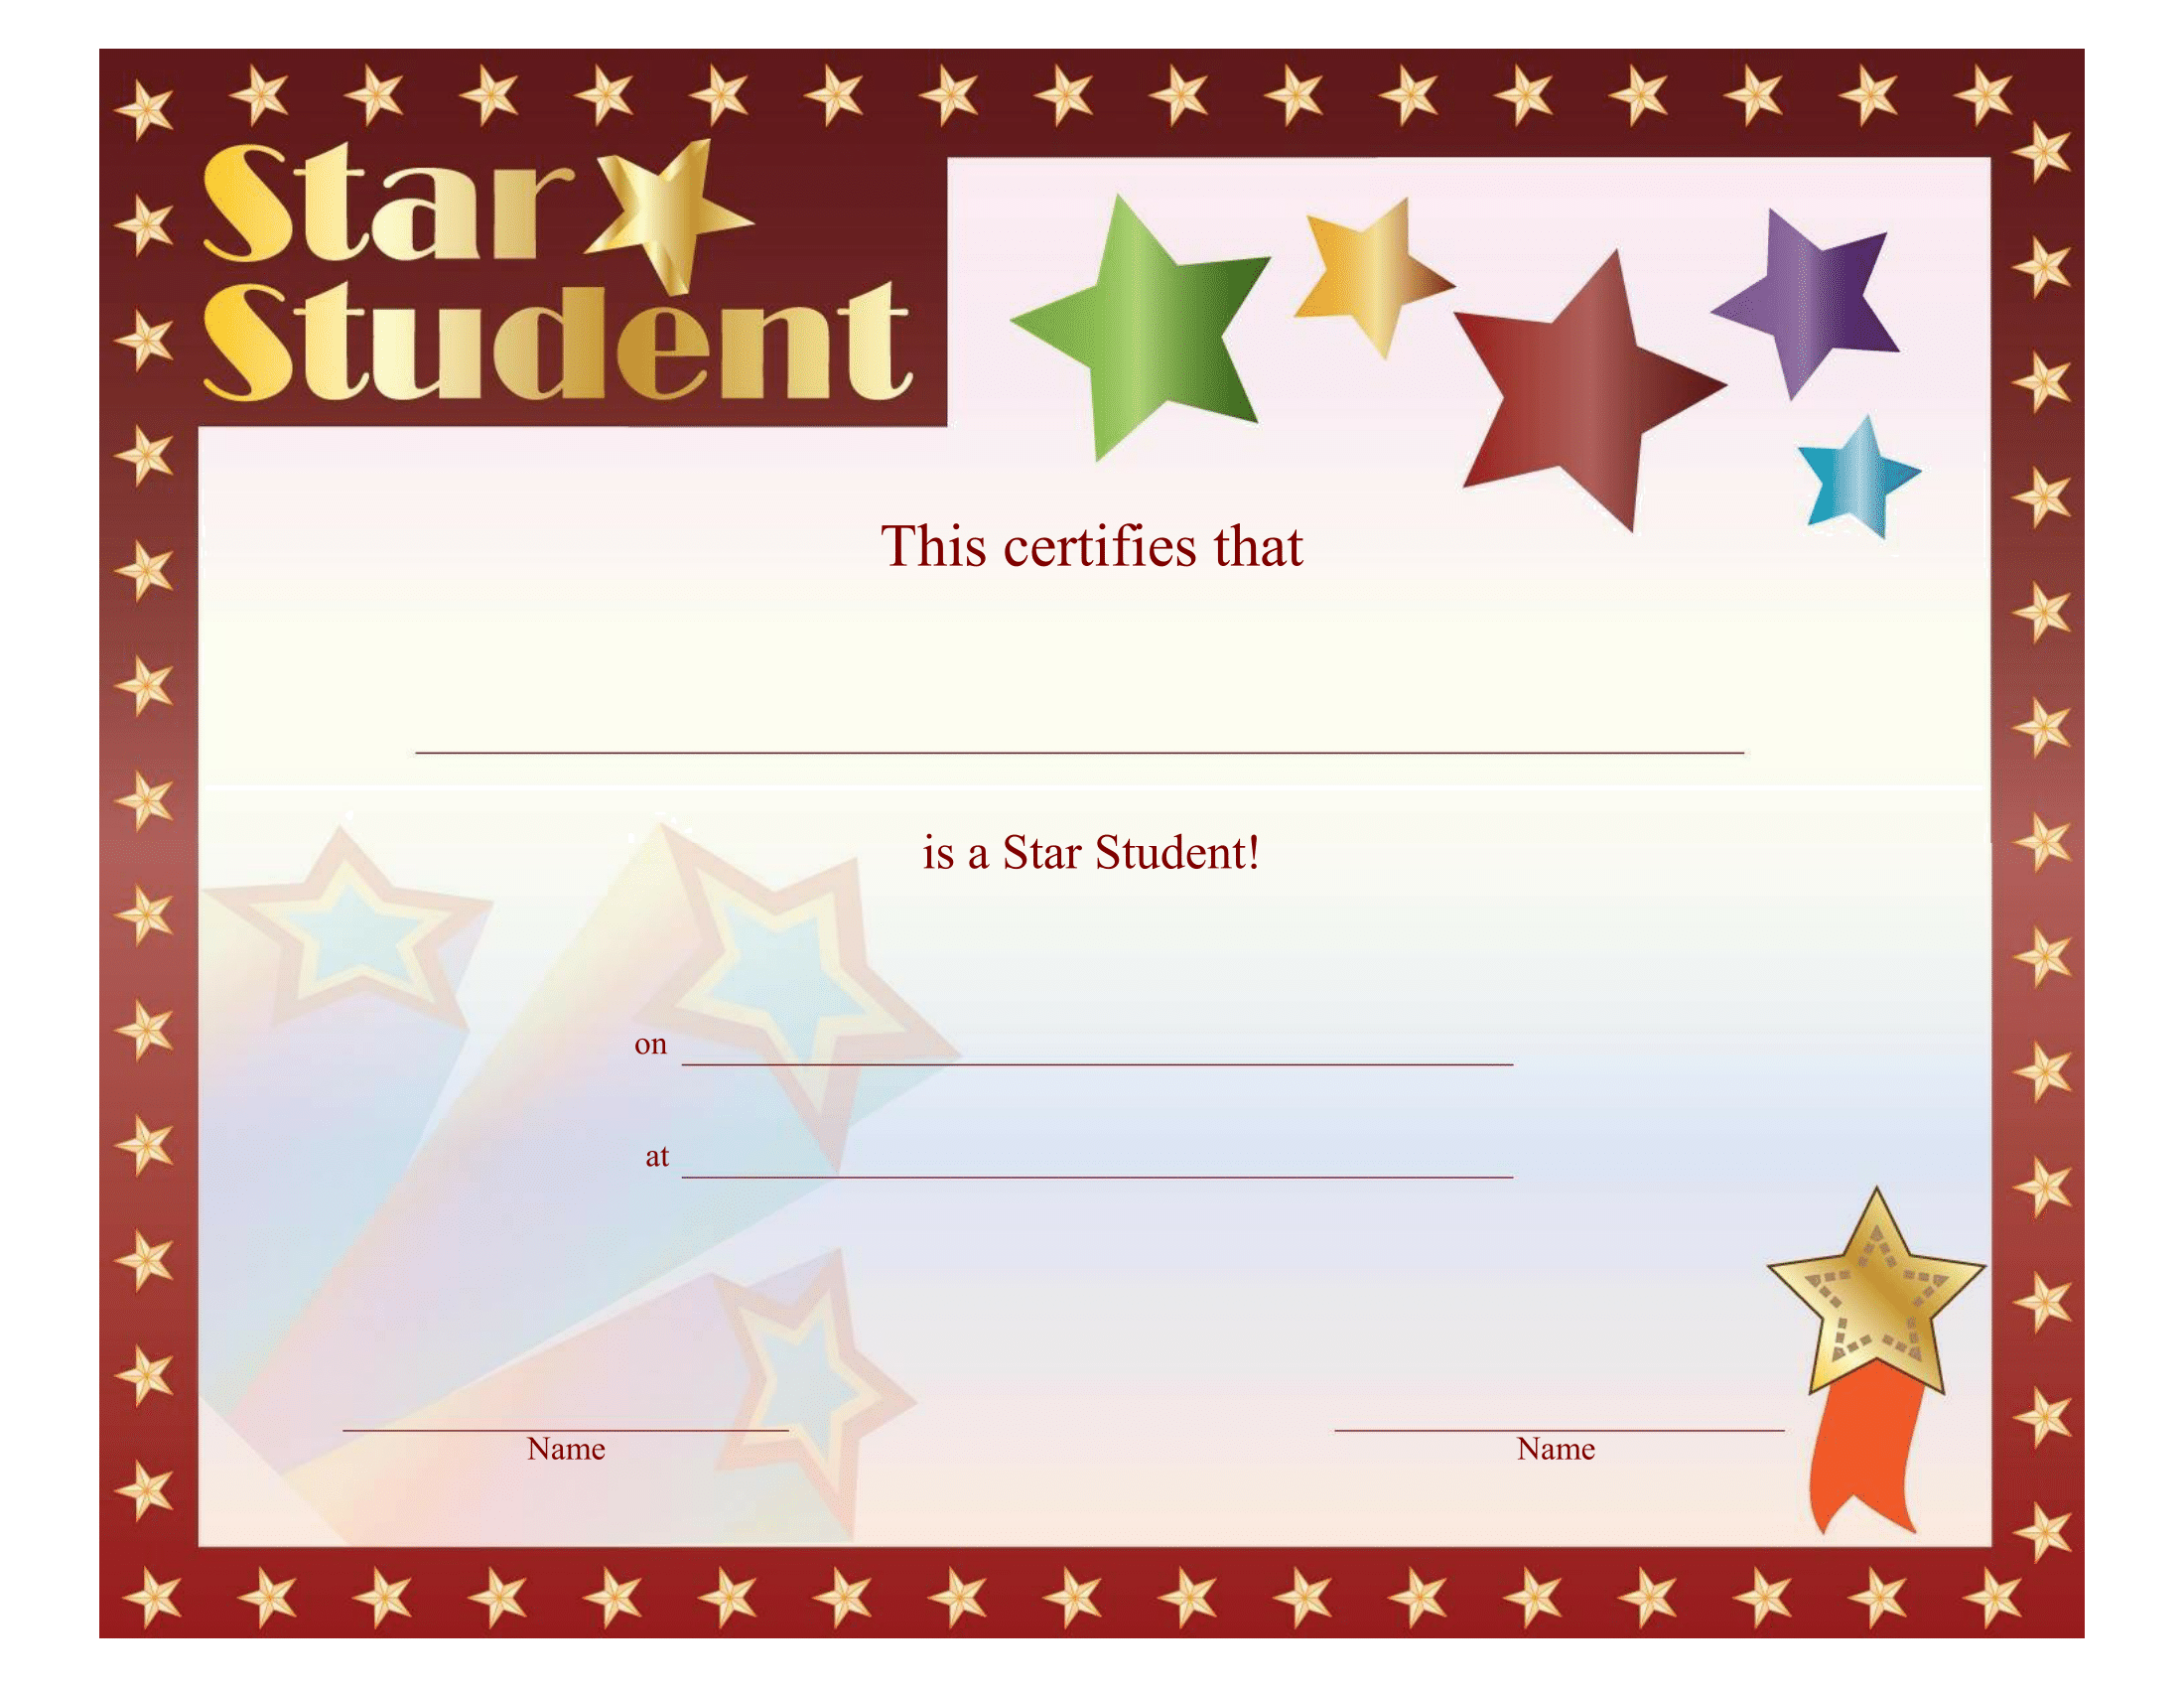 Star Student Certificate – FREE Printable Download